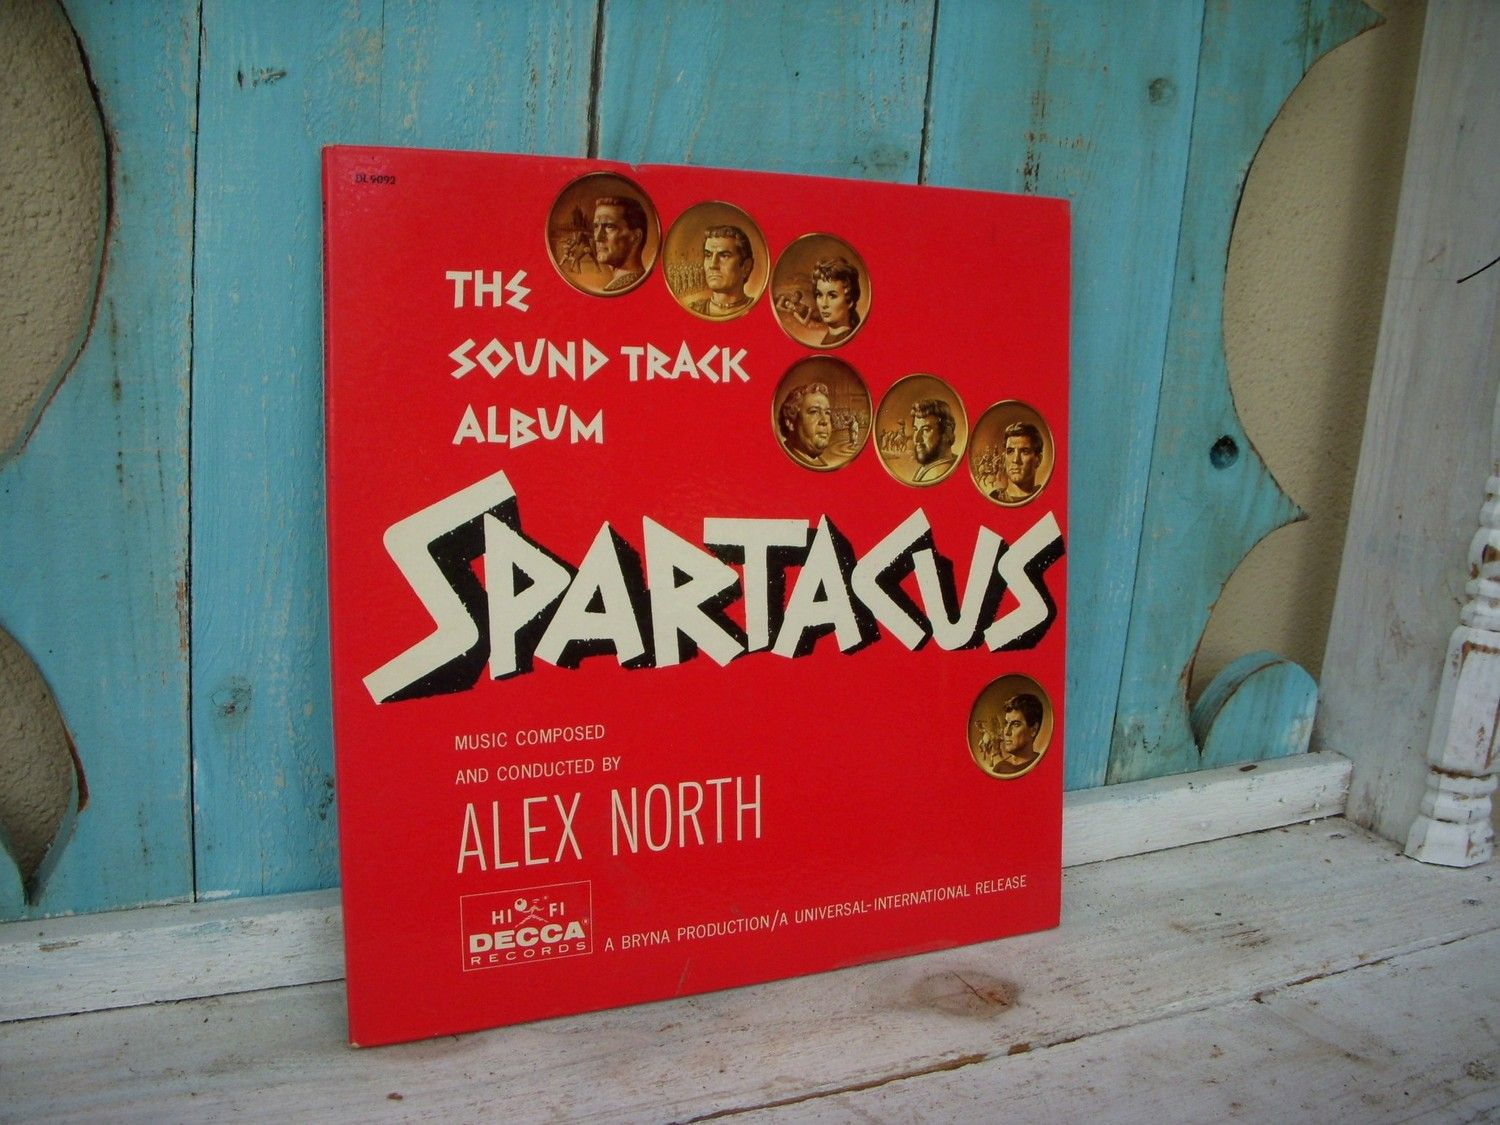 Vintage Movie Soundtrack Spartacus Vinyl 60s Music Album Record Classic Movies Gifts For Move Buffs Movie Lovers Him Her Wife Usa Movie Soundtracks Vintage Movies Music Albums